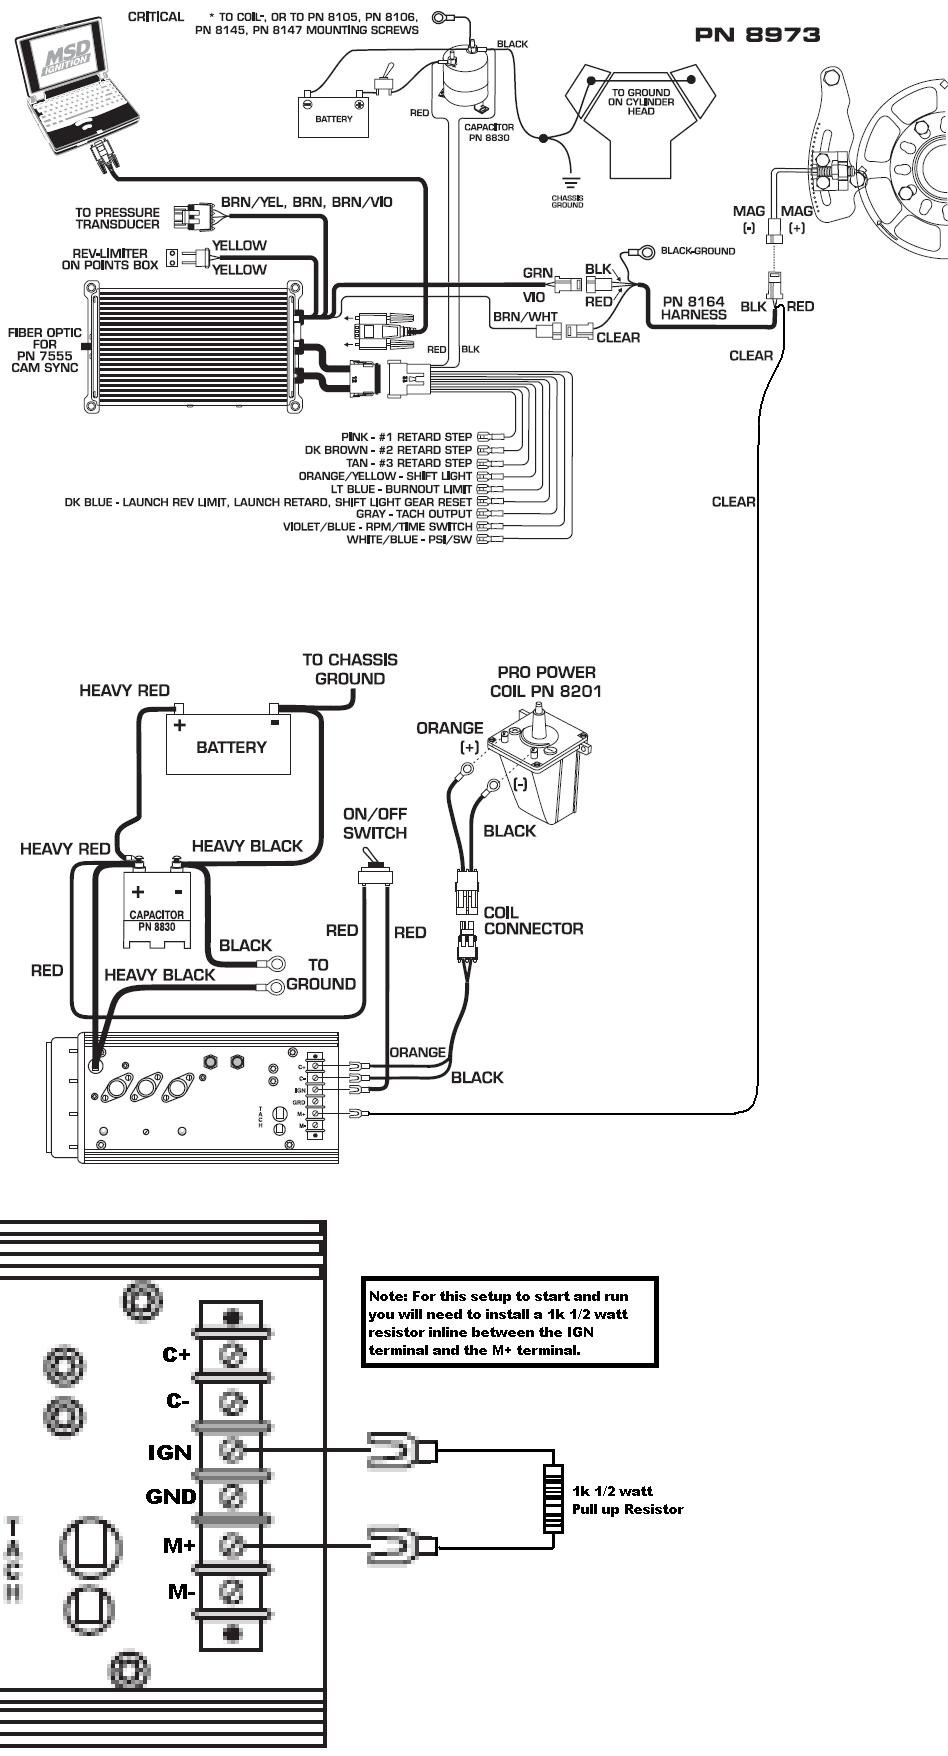 Ignition Wiring Diagram Msd 6m 2 MSD Ignition Coil Wiring